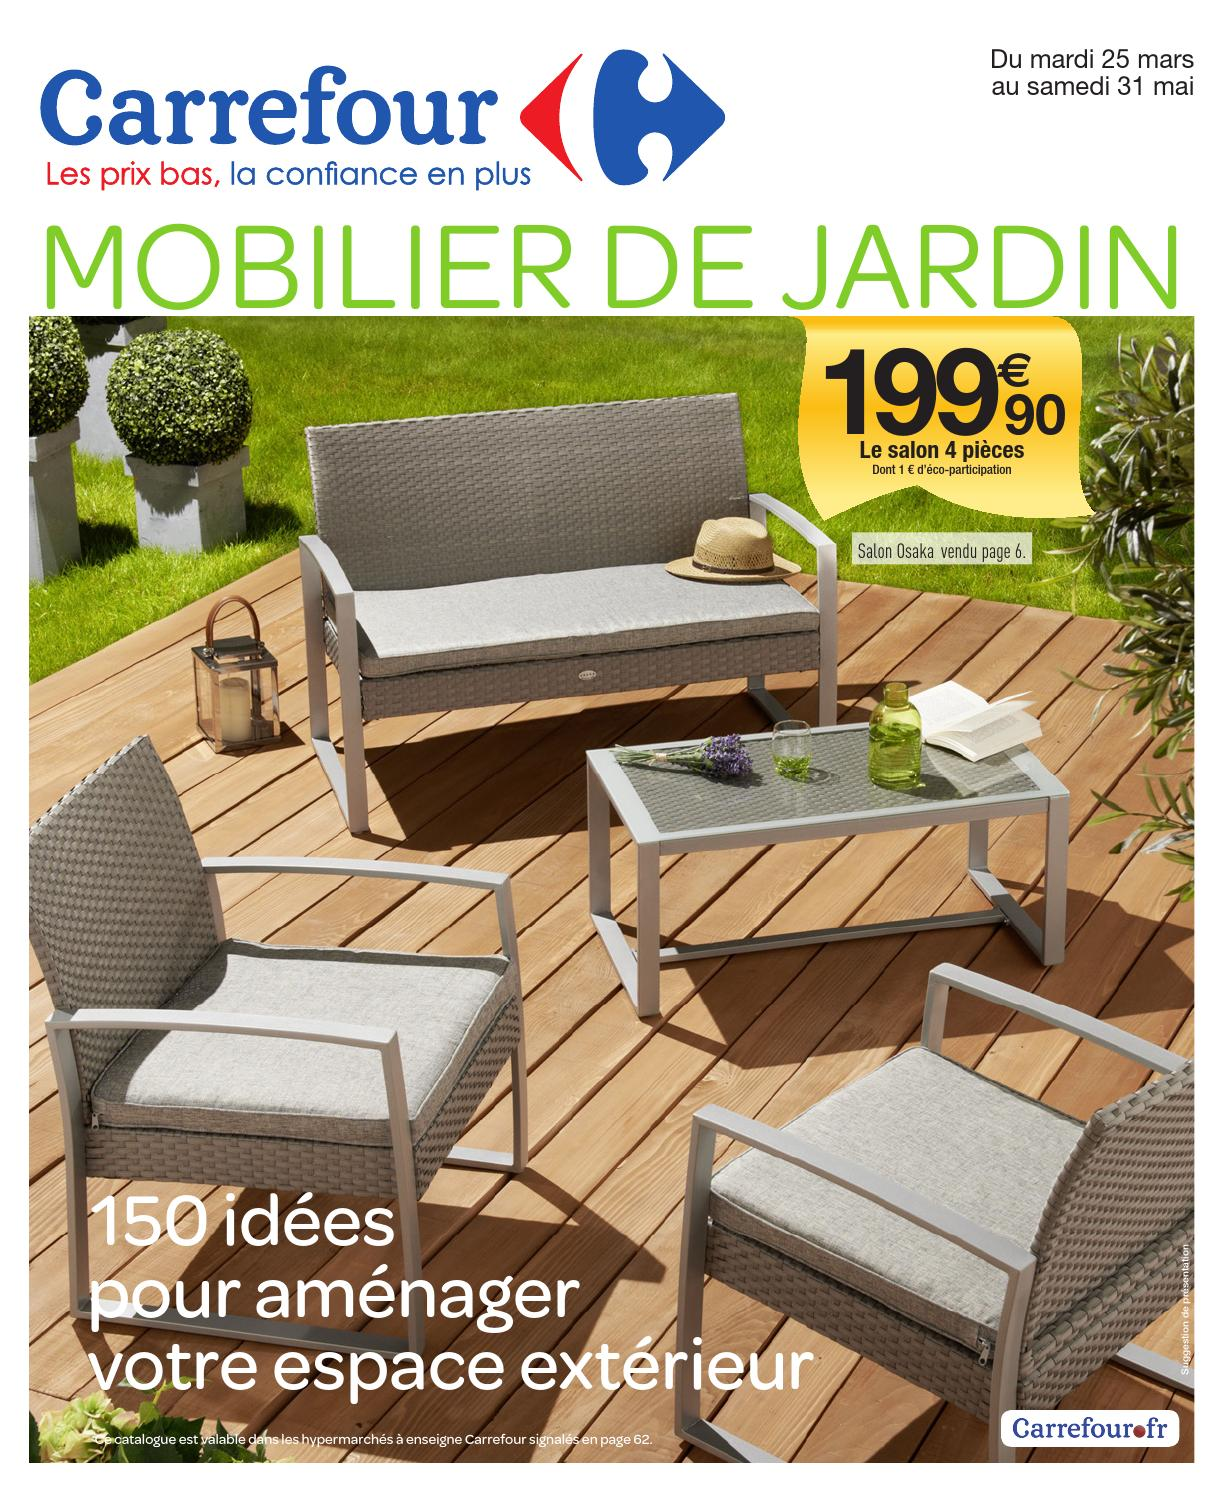 Catalogue Carrefour - 25.03-31.05.2014 by joe monroe - issuu